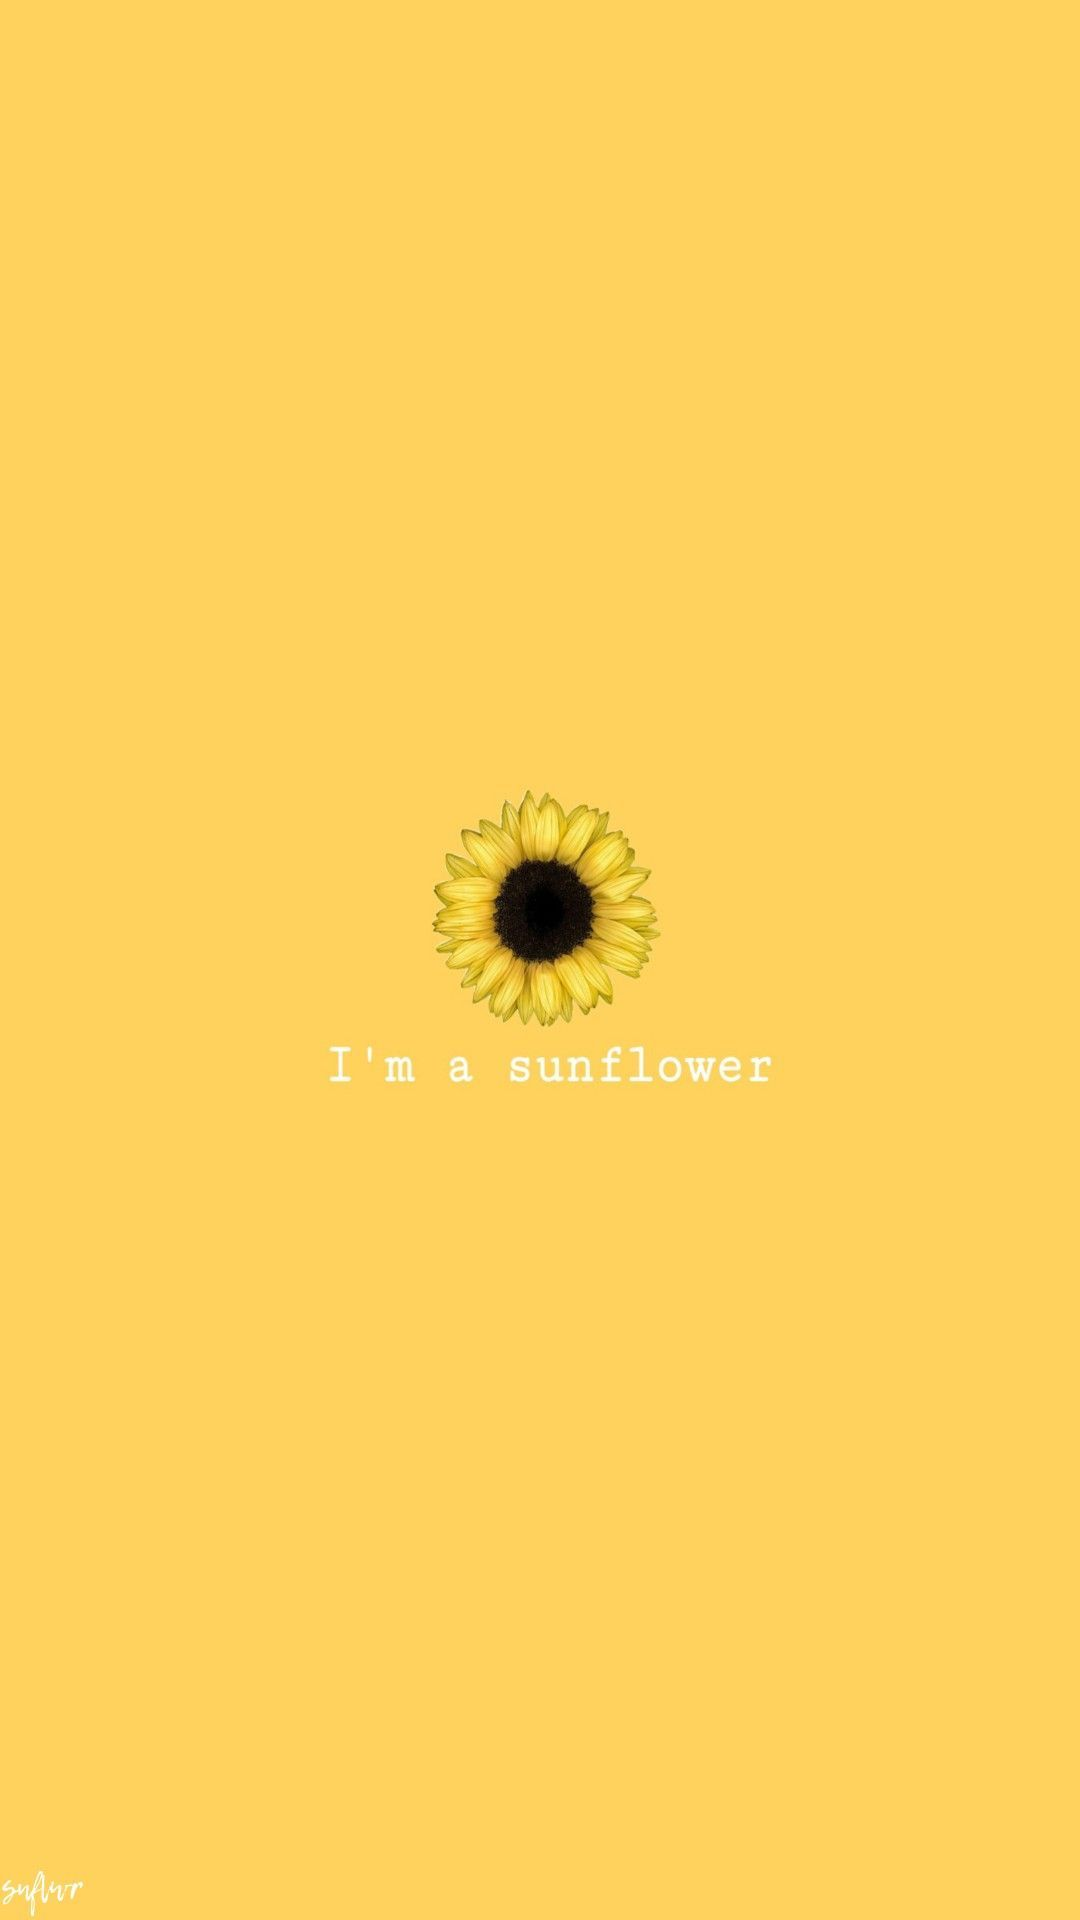 Sunflower Phone Wallpapers Top Free Sunflower Phone Backgrounds Wallpaperaccess